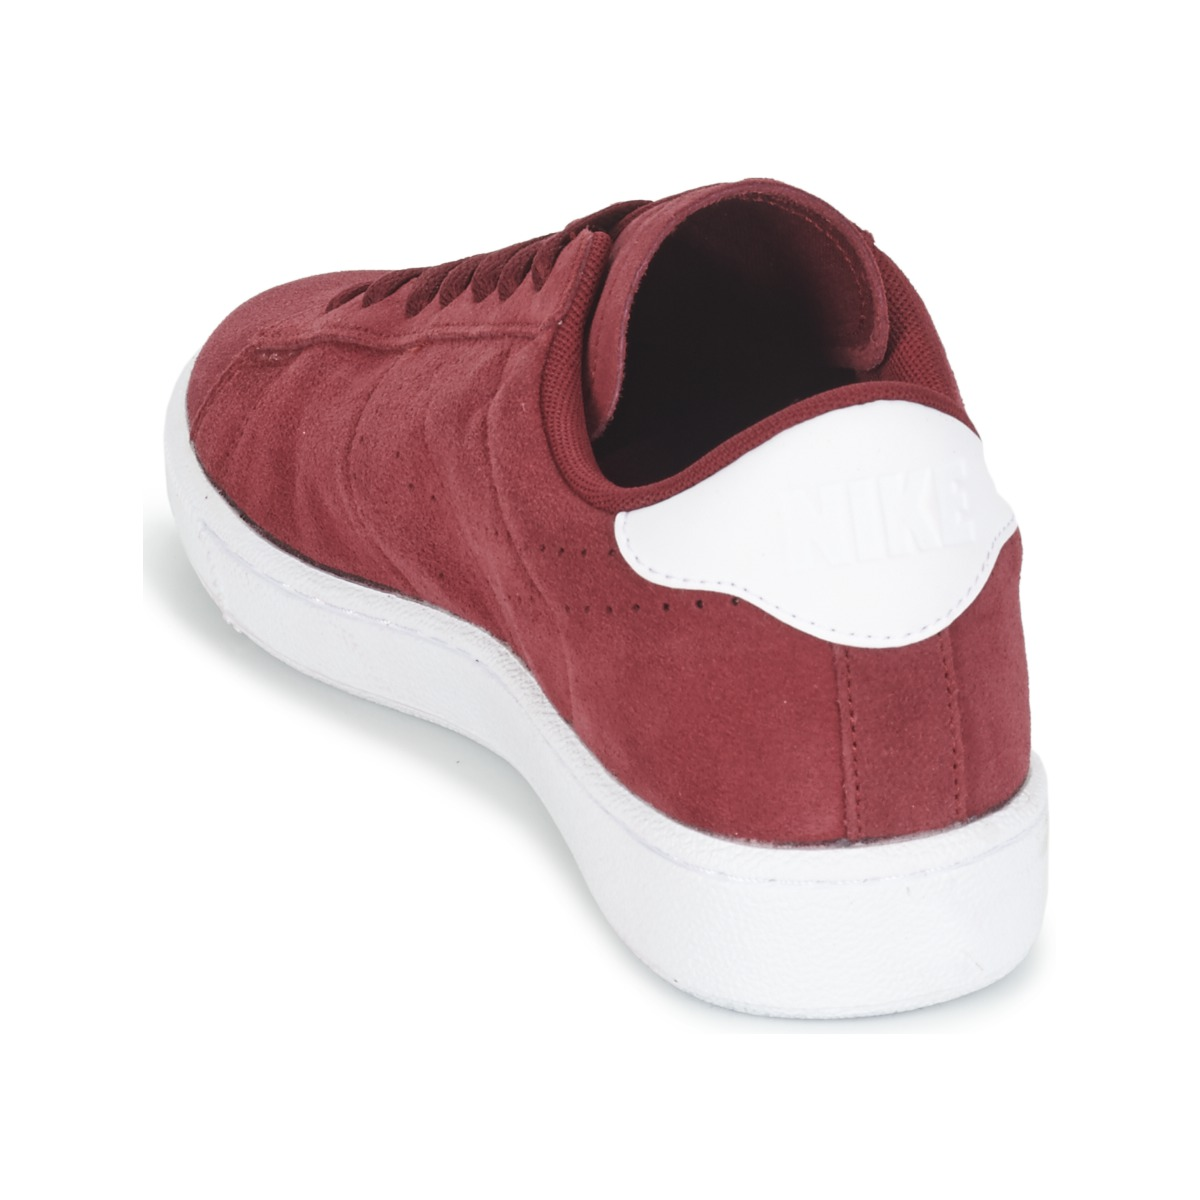 new Nike TENNIS CLASSIC CS SUEDE Red Shoes Low top trainers Men